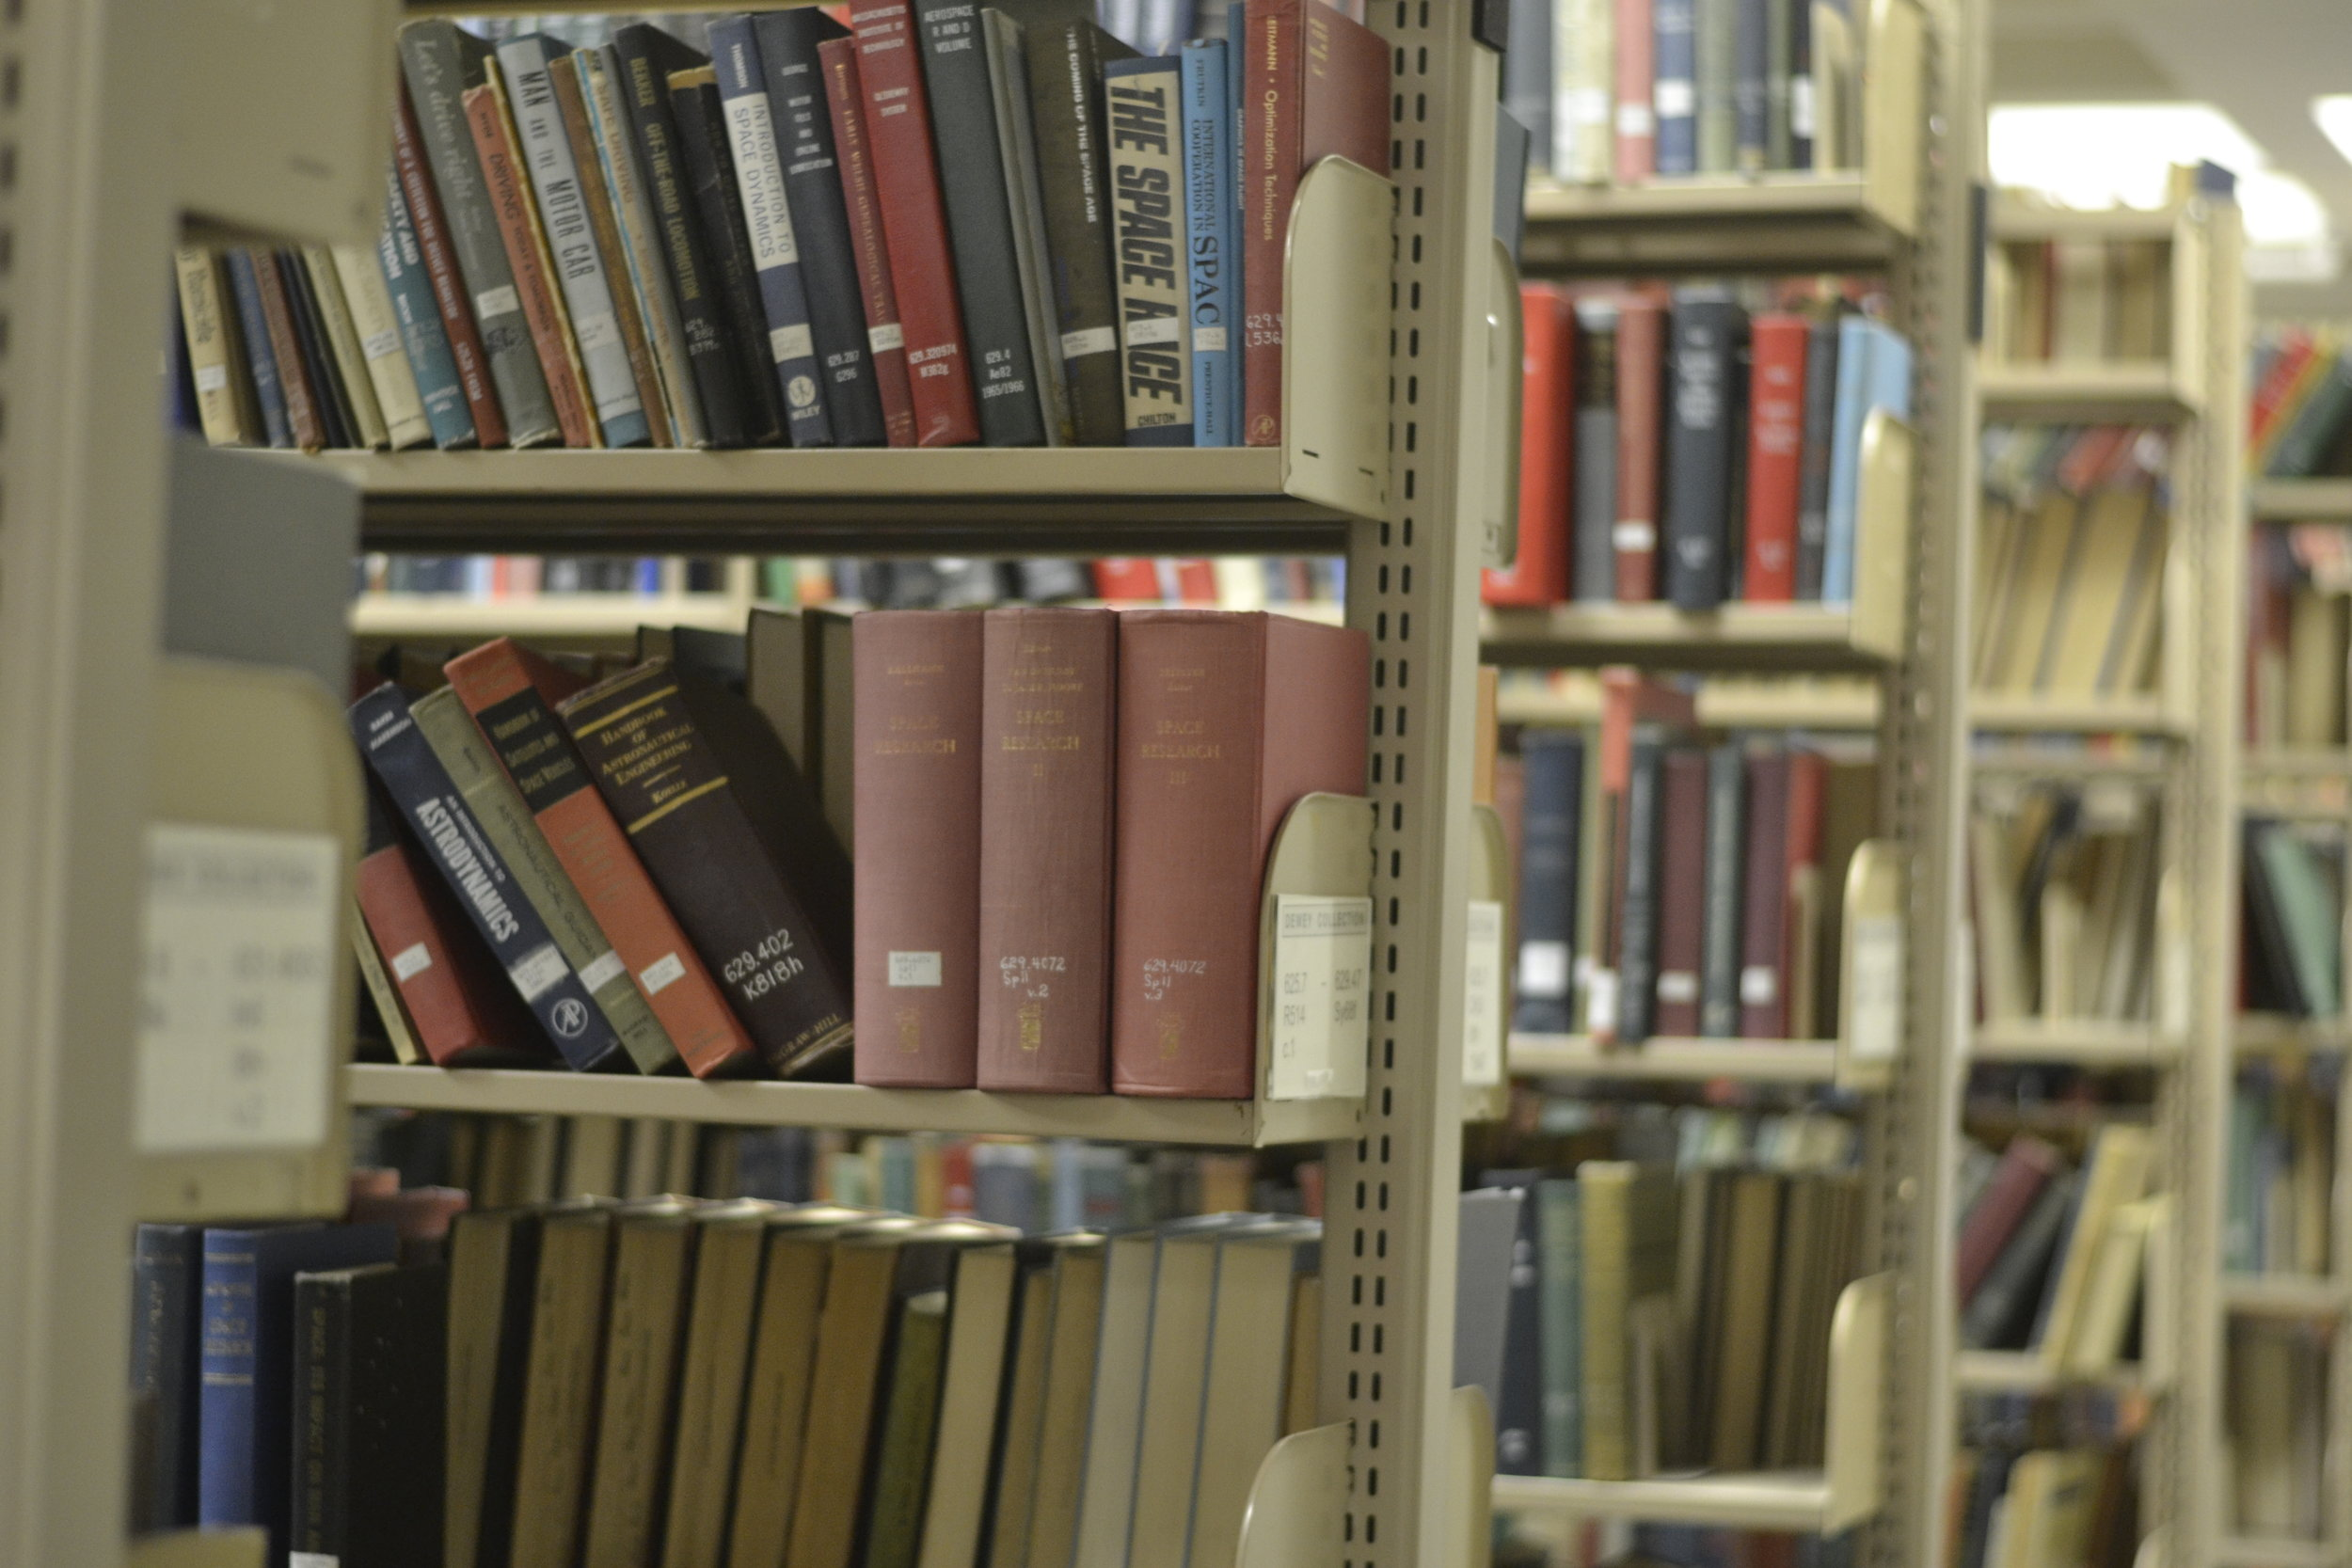 Bookshelves in the Homer Babbidge Library. (file photo by rebecca newman/The Daily Campus)